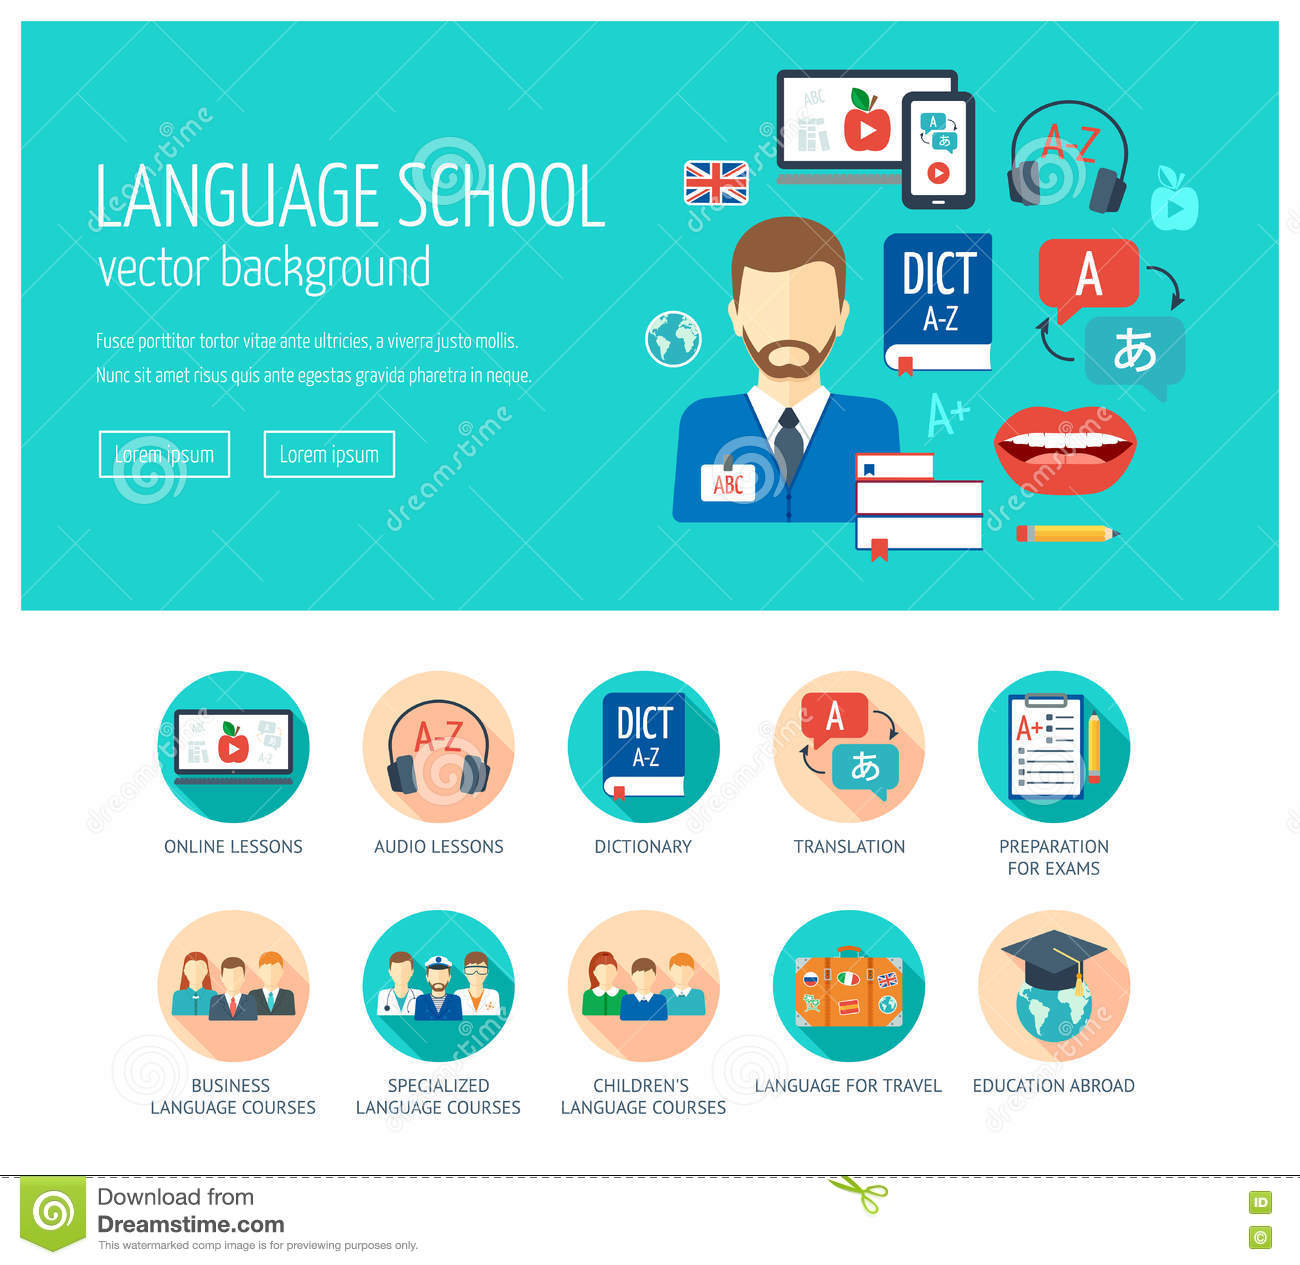 Web Design Concept For Website And Landing Page For Foreign Language School  And Courses. Web Banner. Flat Design. Vector Stock Illustration -  Illustration of internet, international: 81863719